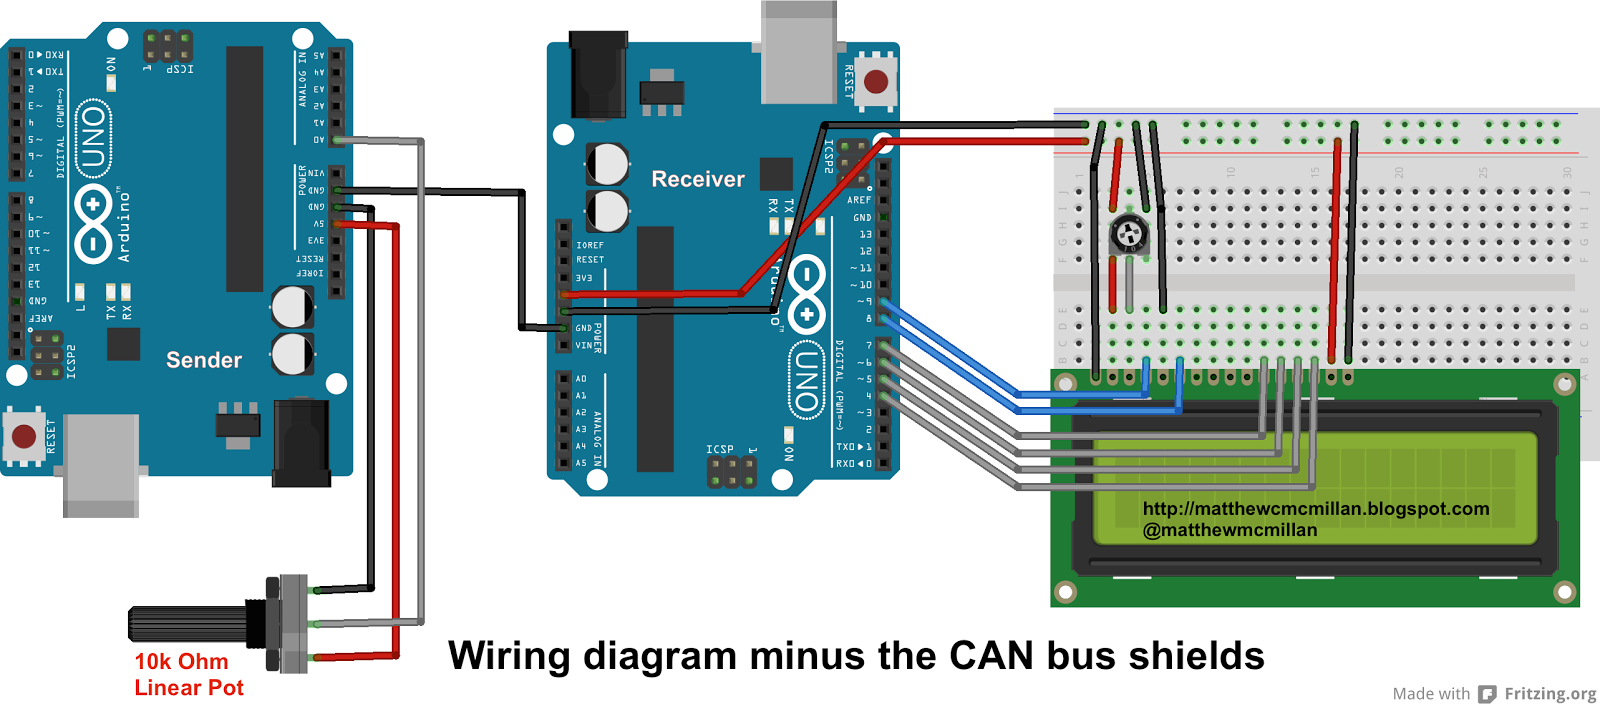 Matthew McMillan Arduino Sending data over a CAN bus – Can Bus Wiring Diagram